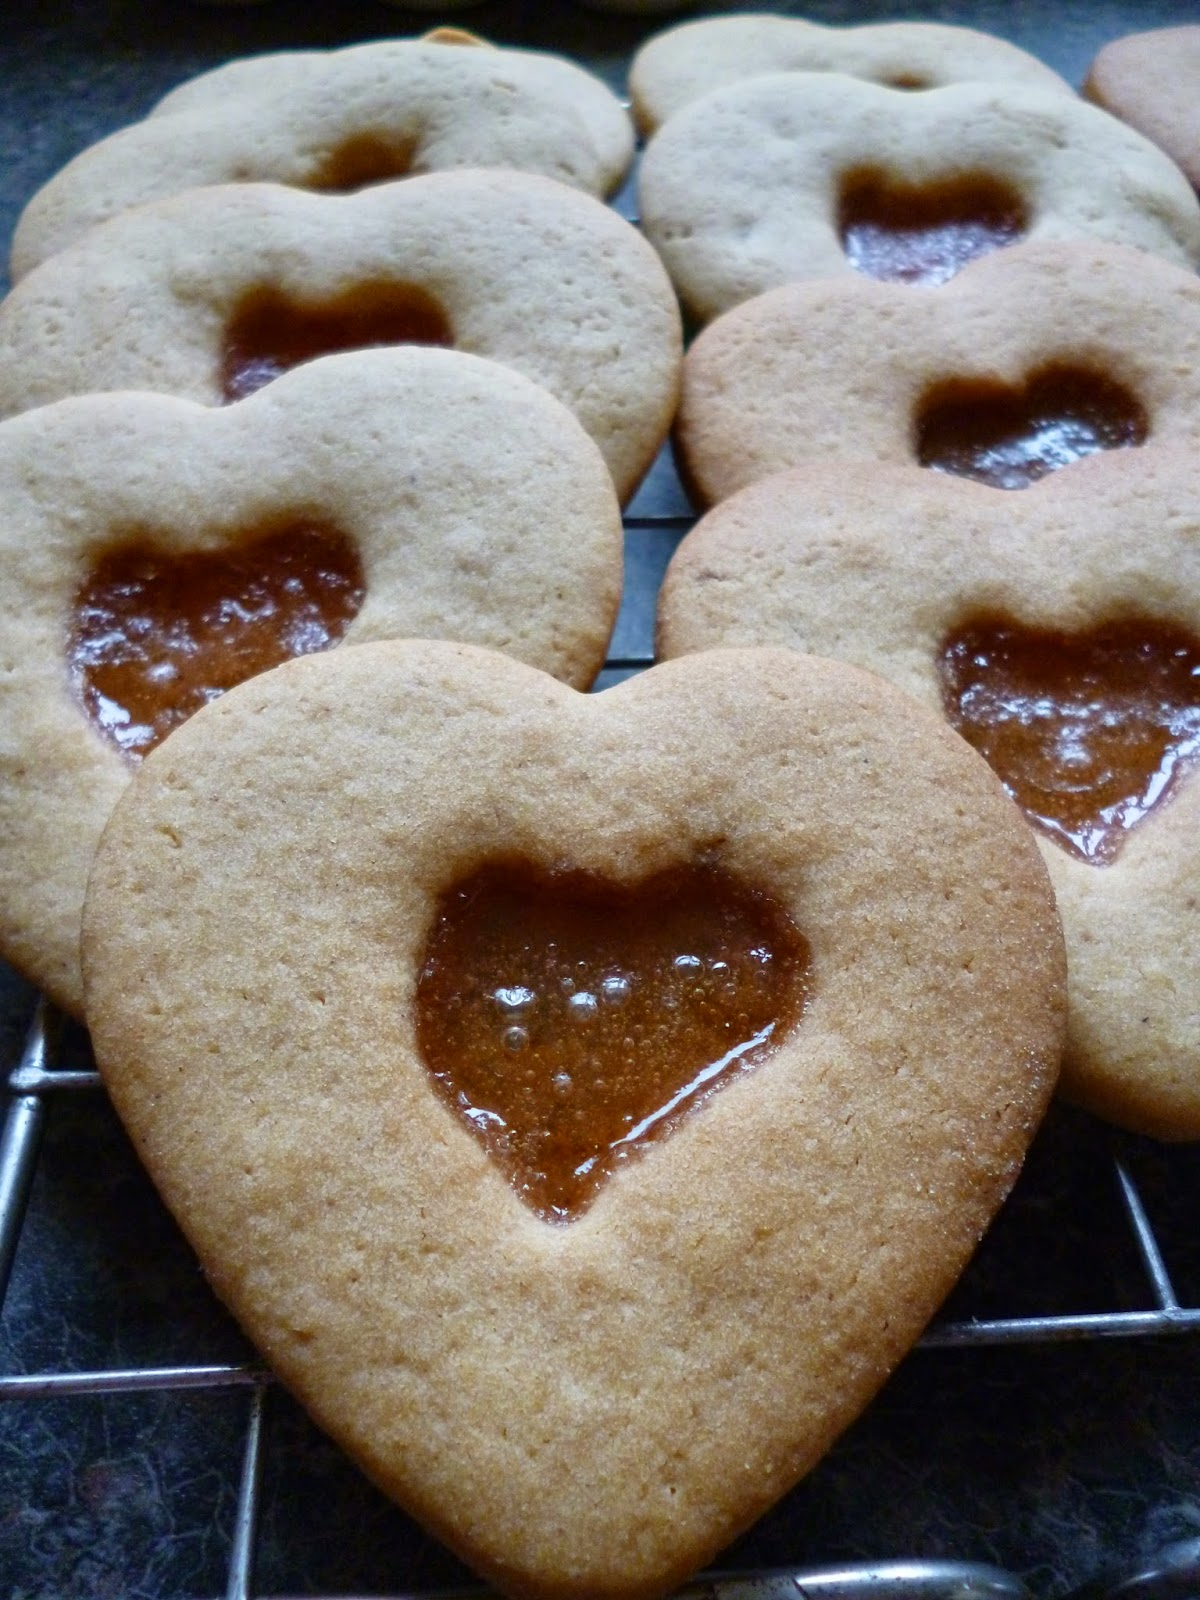 Heart shaped stained glass biscuits recipe Sweet Heart Cookies Recipe biscuits celebrate wedding favours cookies engagement valentines